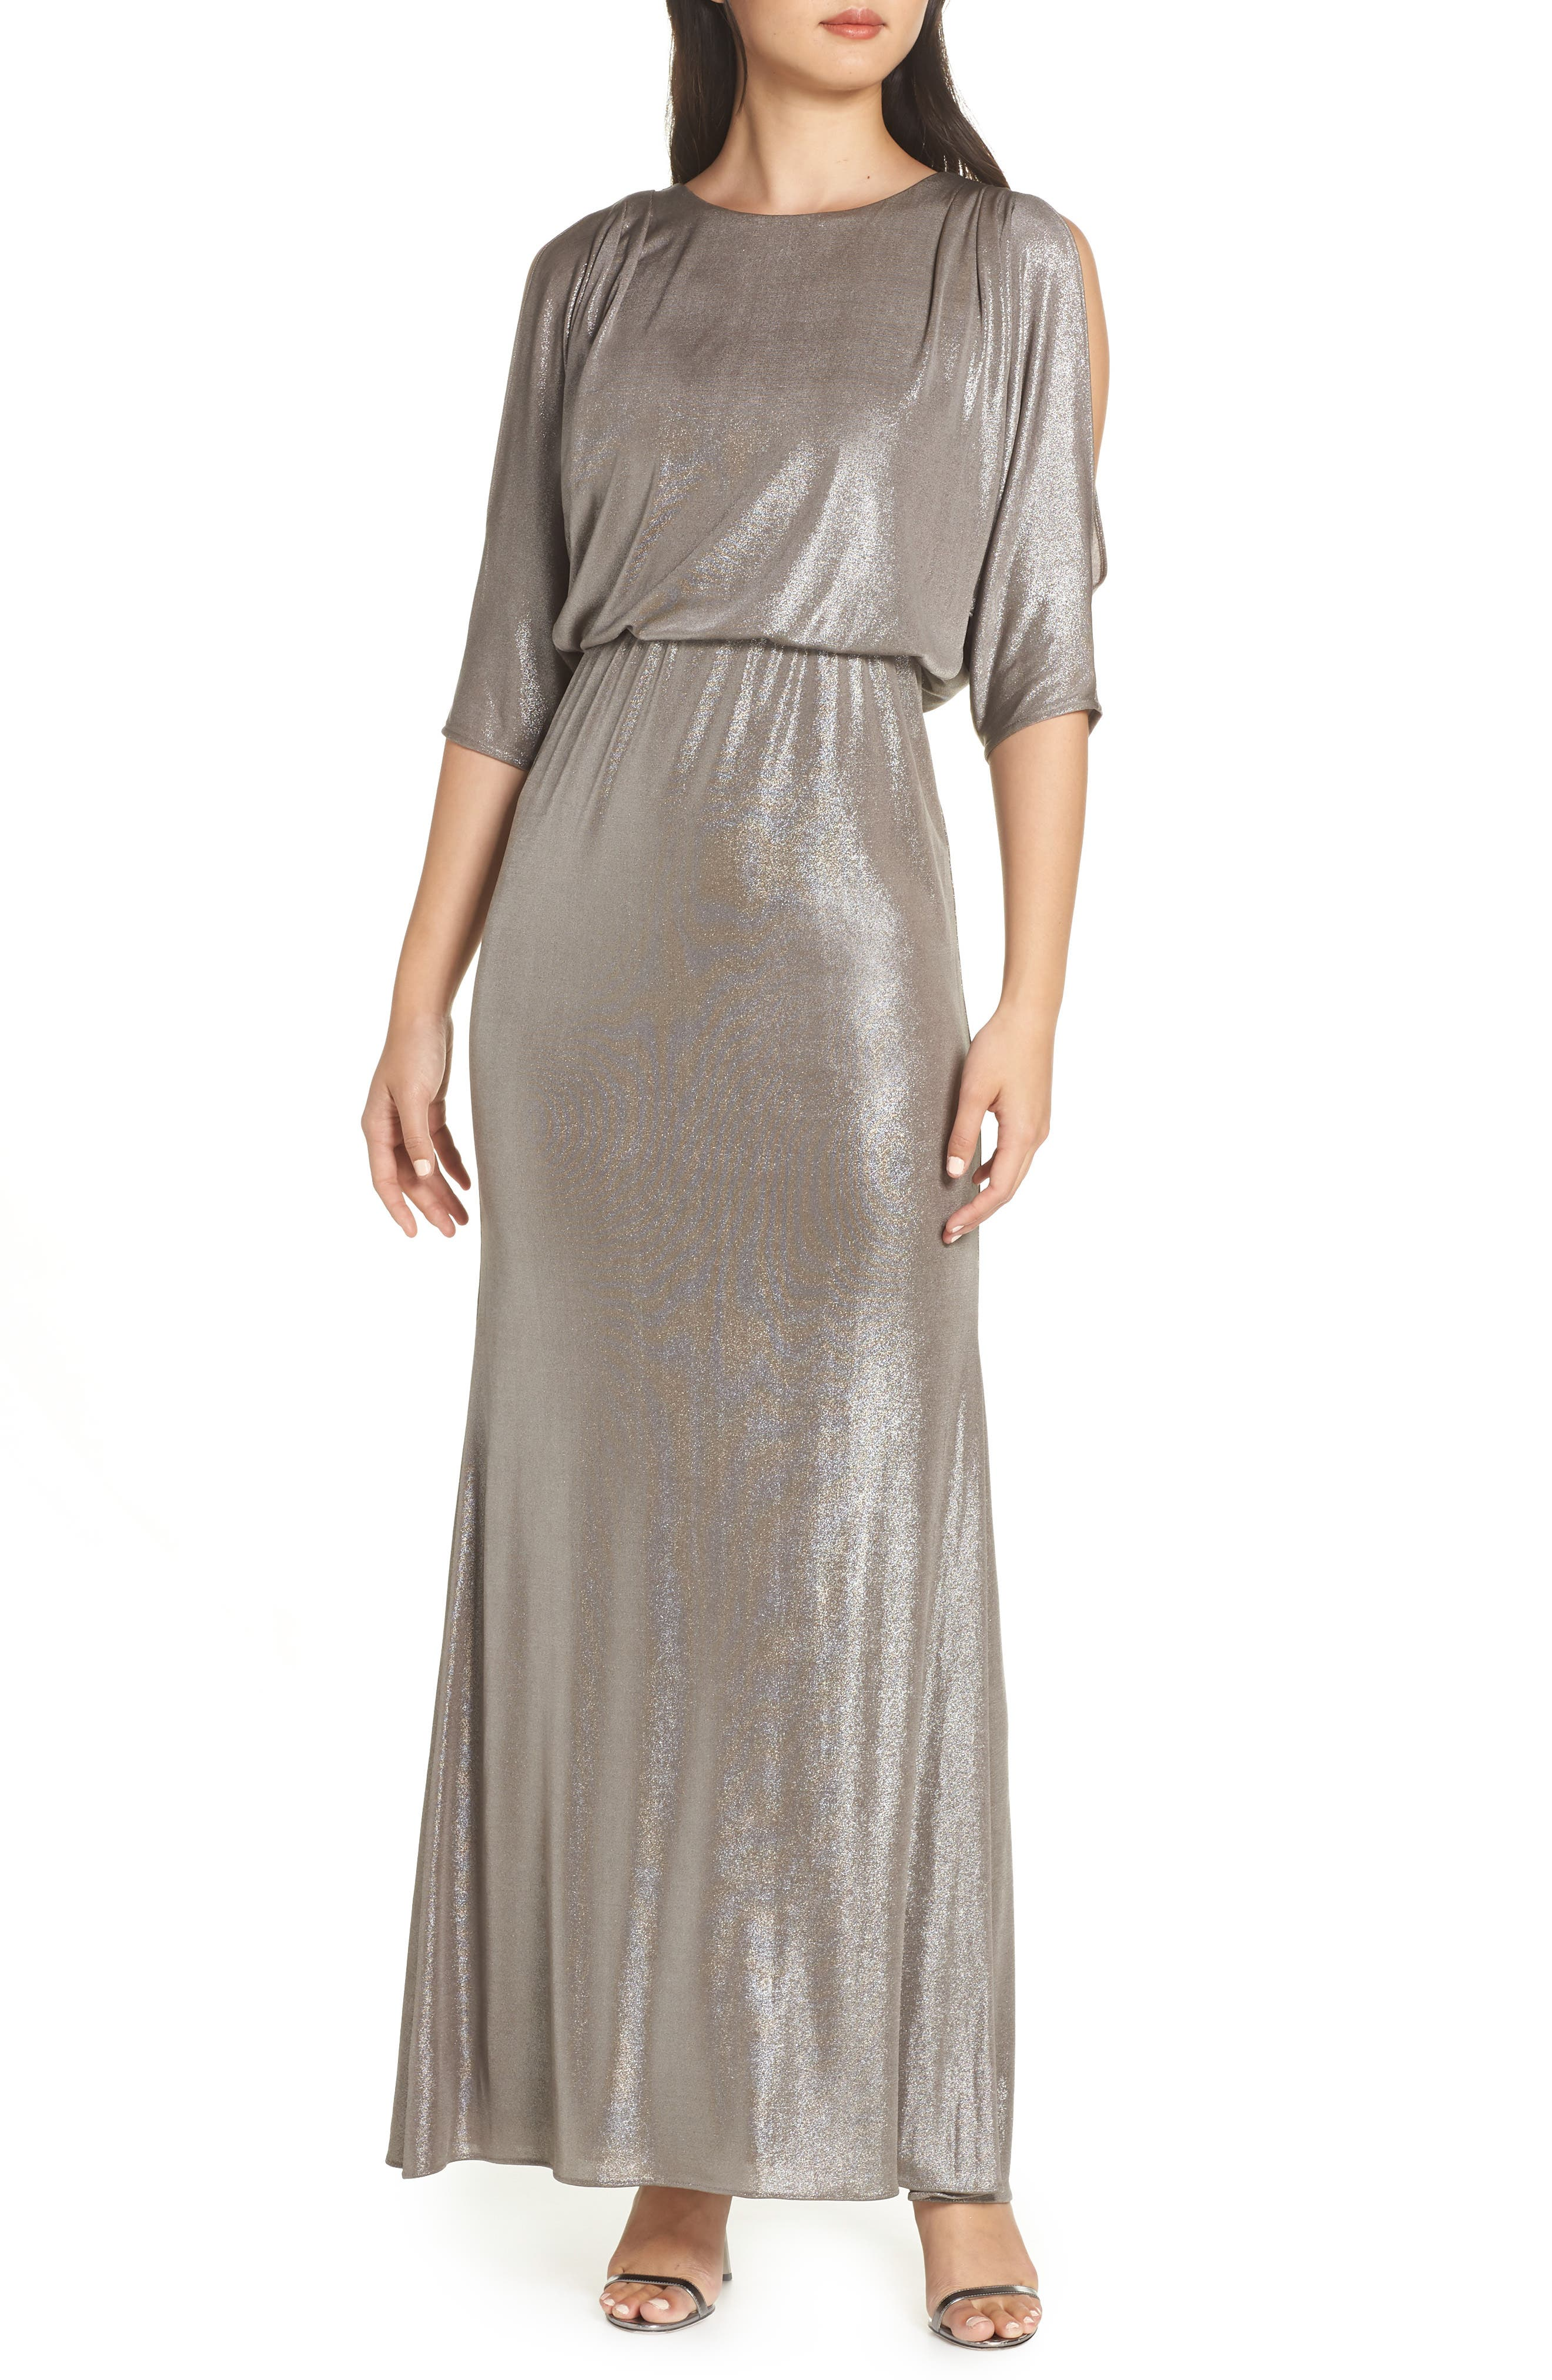 70s Prom, Formal, Evening, Party Dresses Womens Adrianna Papell Foiled Jersey Gown Size 14 - Metallic $249.00 AT vintagedancer.com